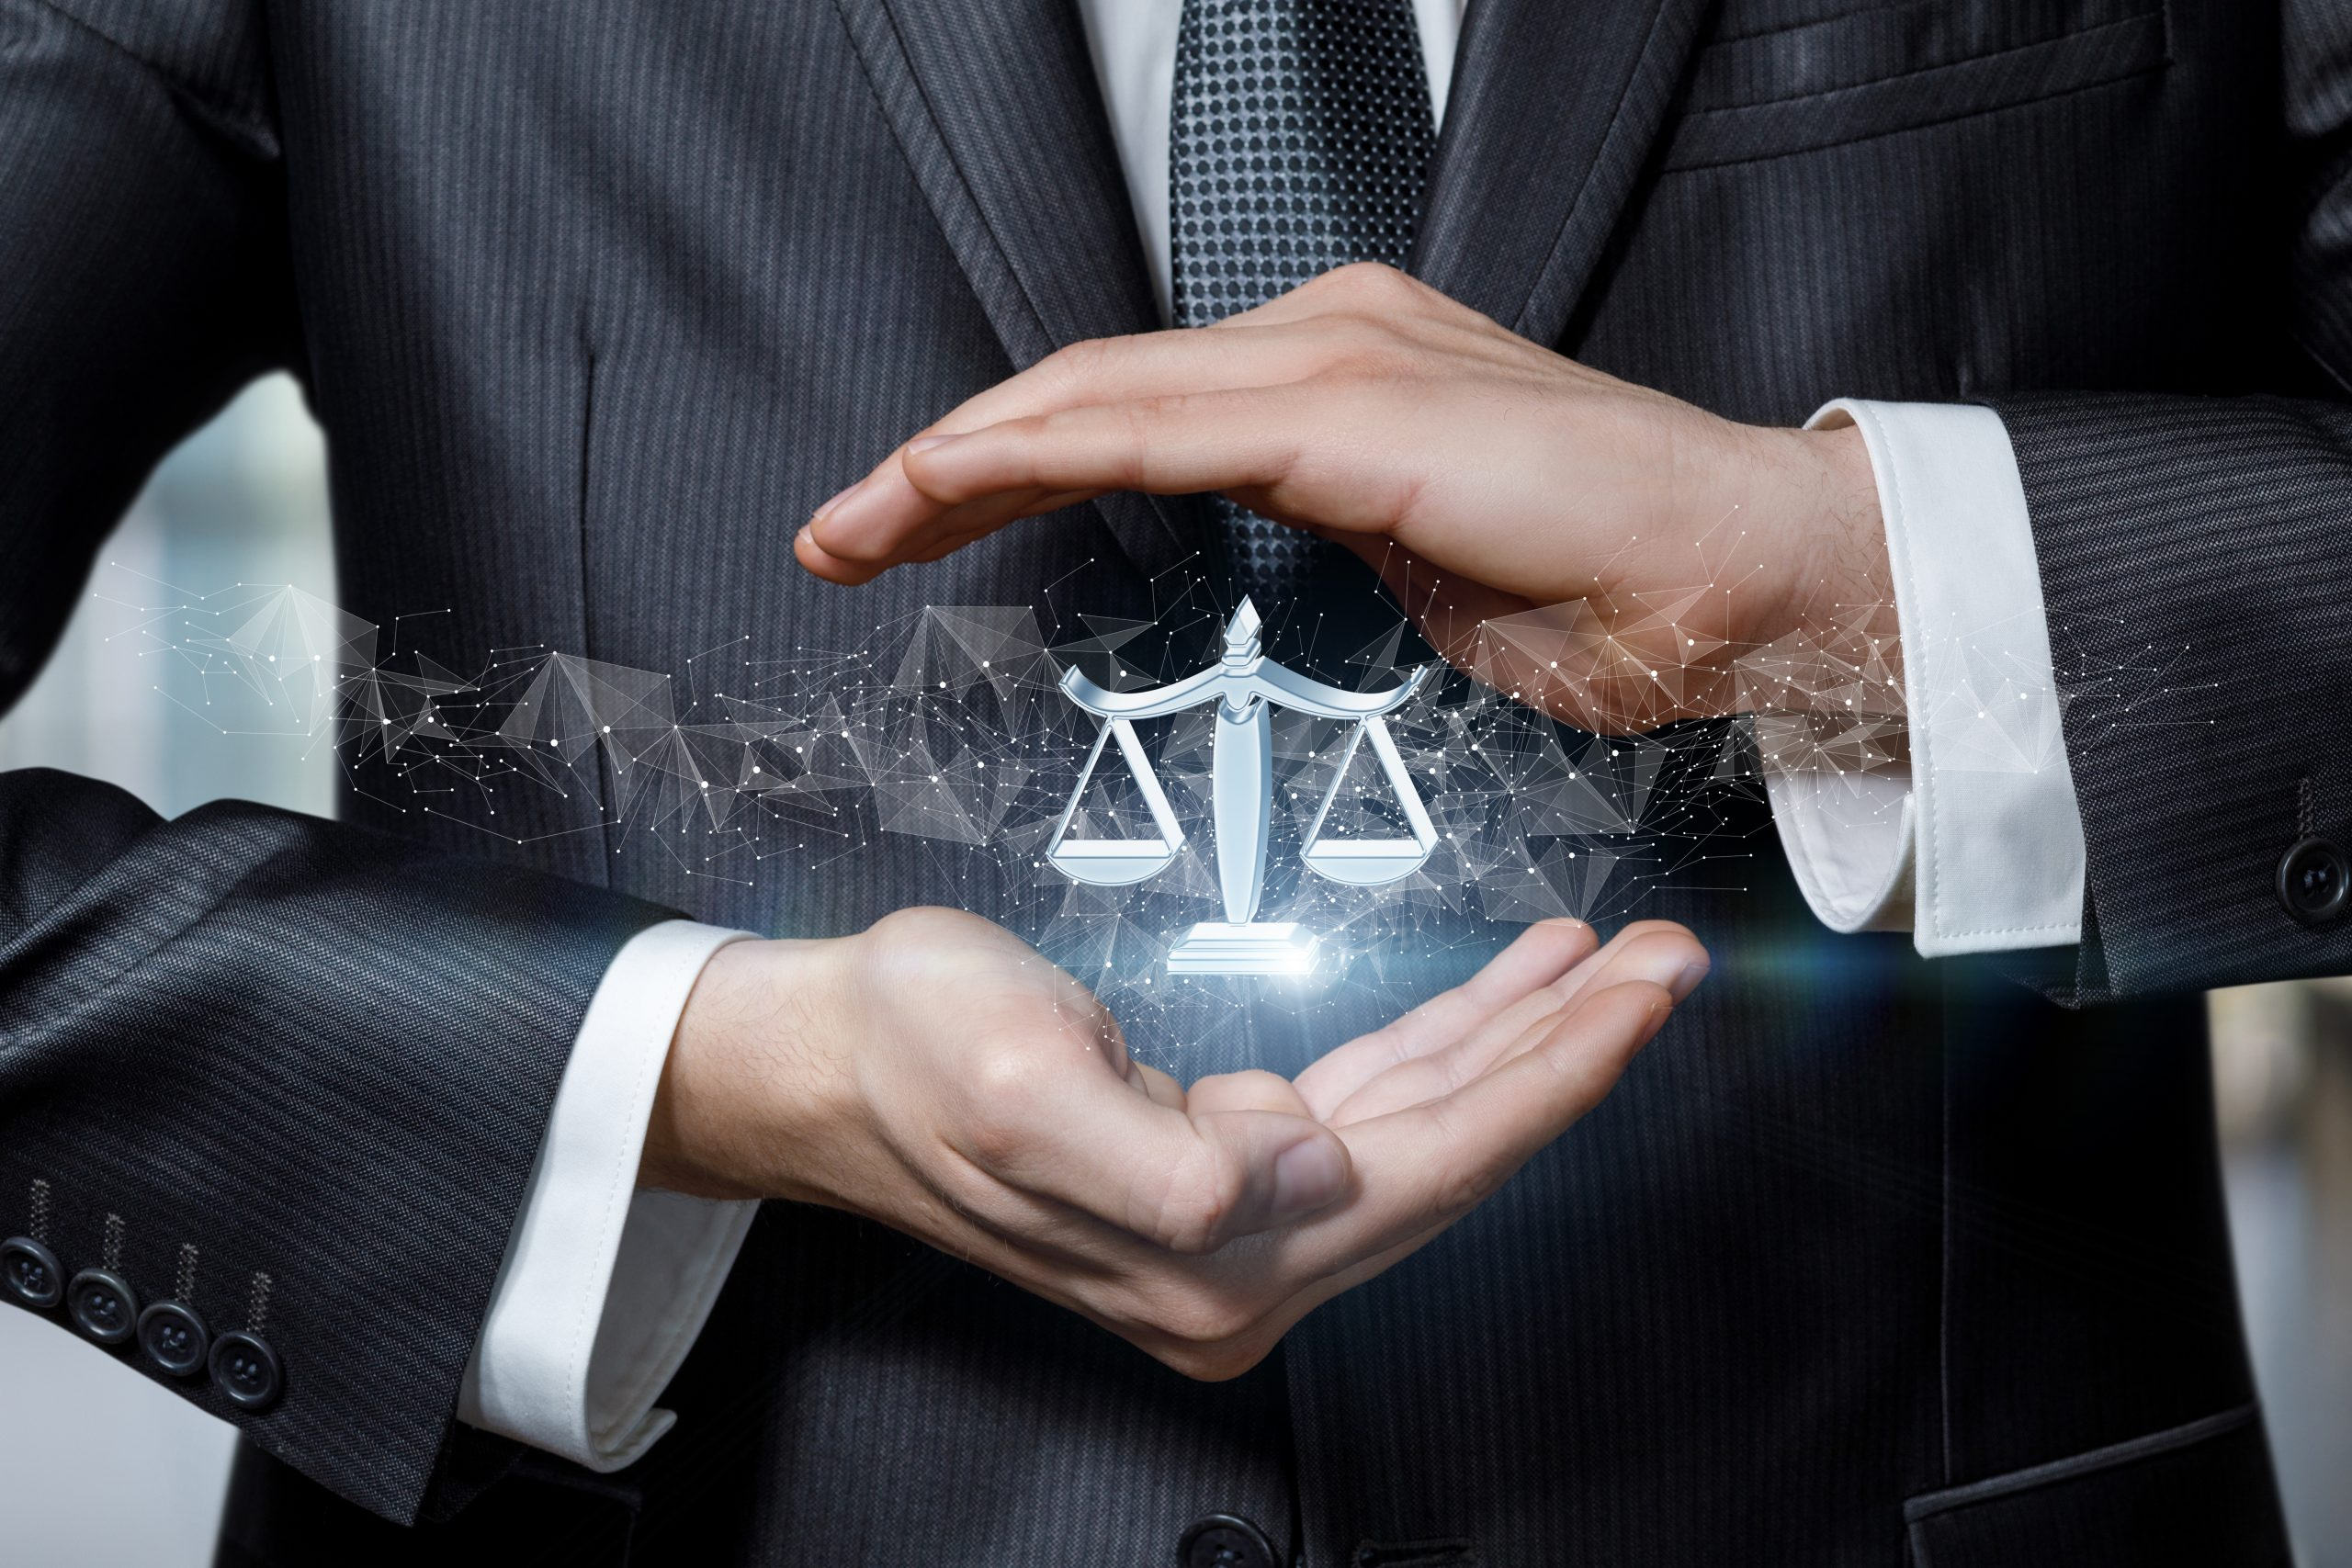 Justice protection concept. Hands protect by gesture the scales of justice icon.